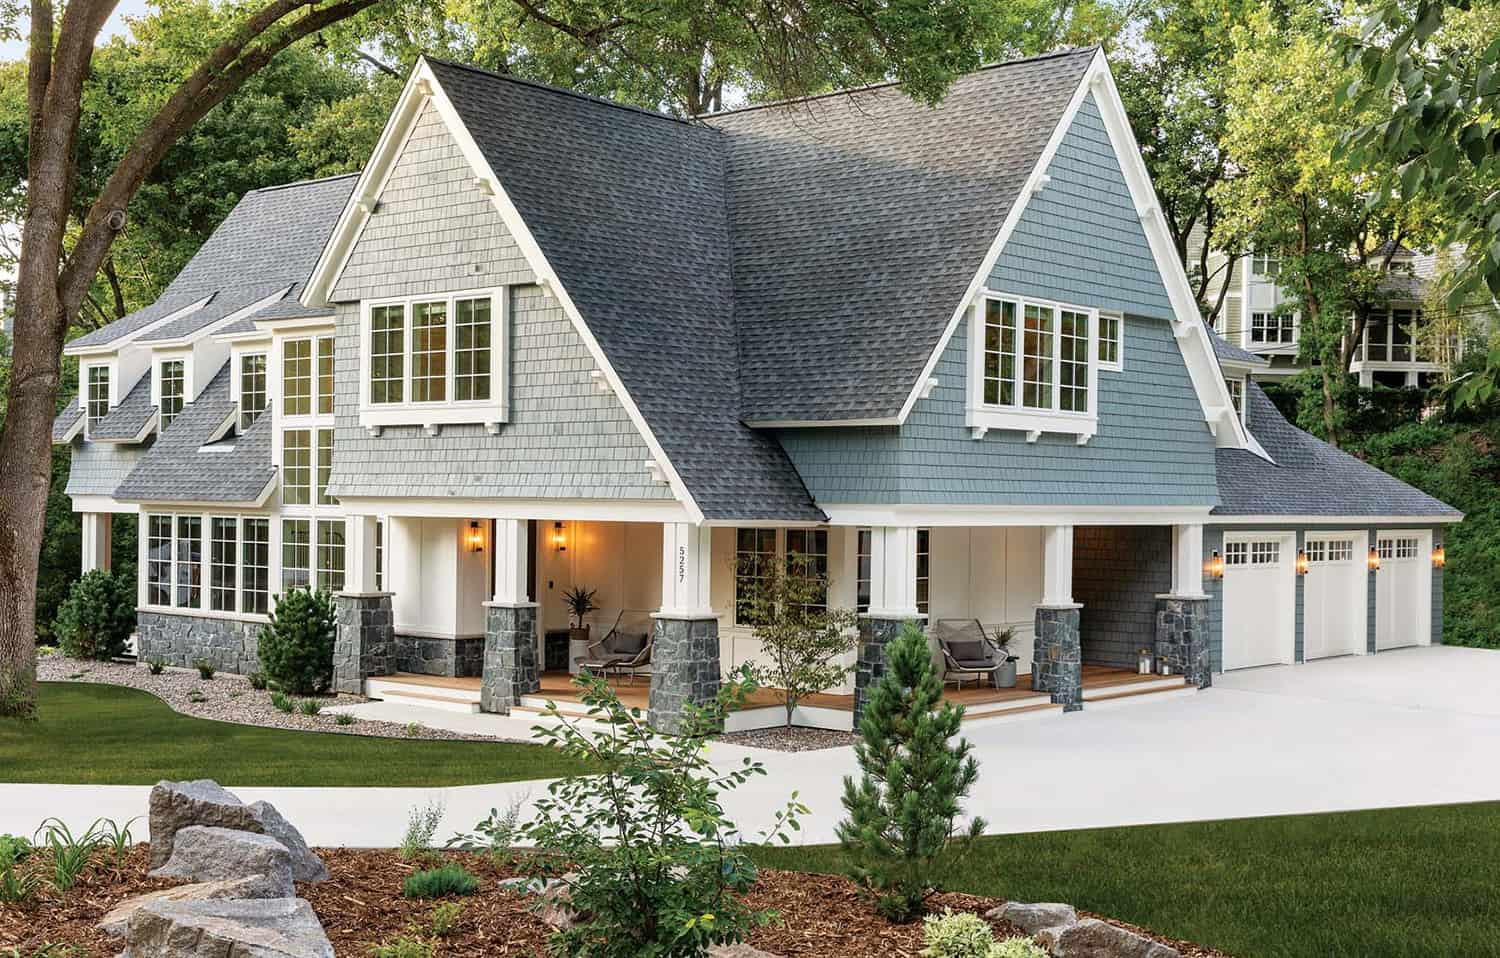 Cottage style dream home inspired by the beauty of nature in Minnesota